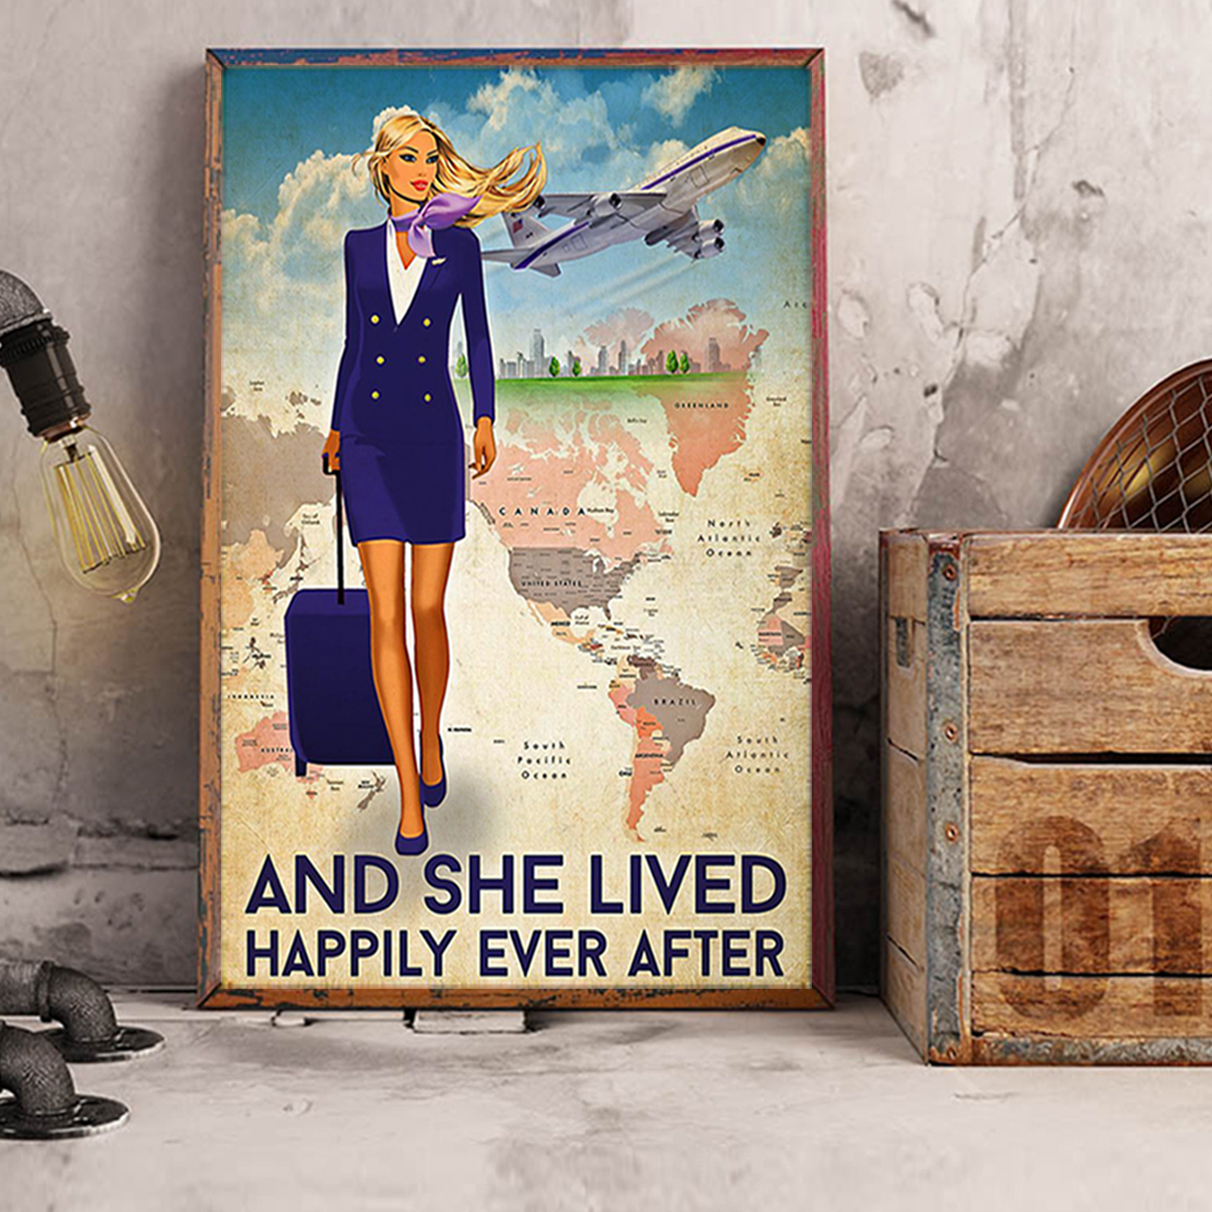 Flight attendant and she lived happily ever after poster A1